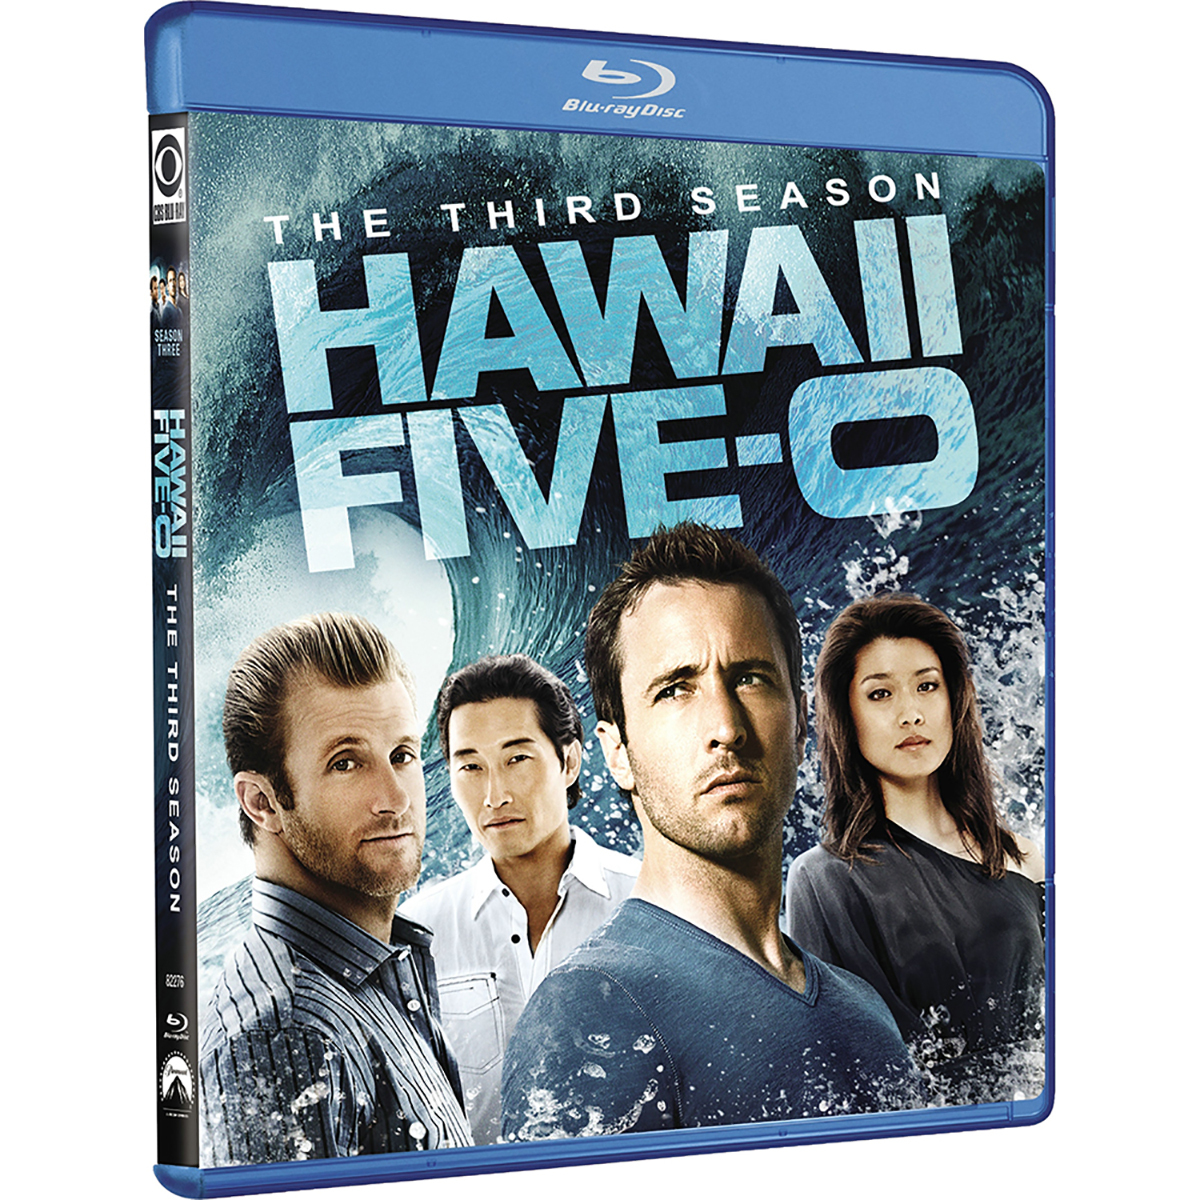 Hawaii Five-O (2012): Season 3 Blu-ray -  DVDs & Videos 2870-462758